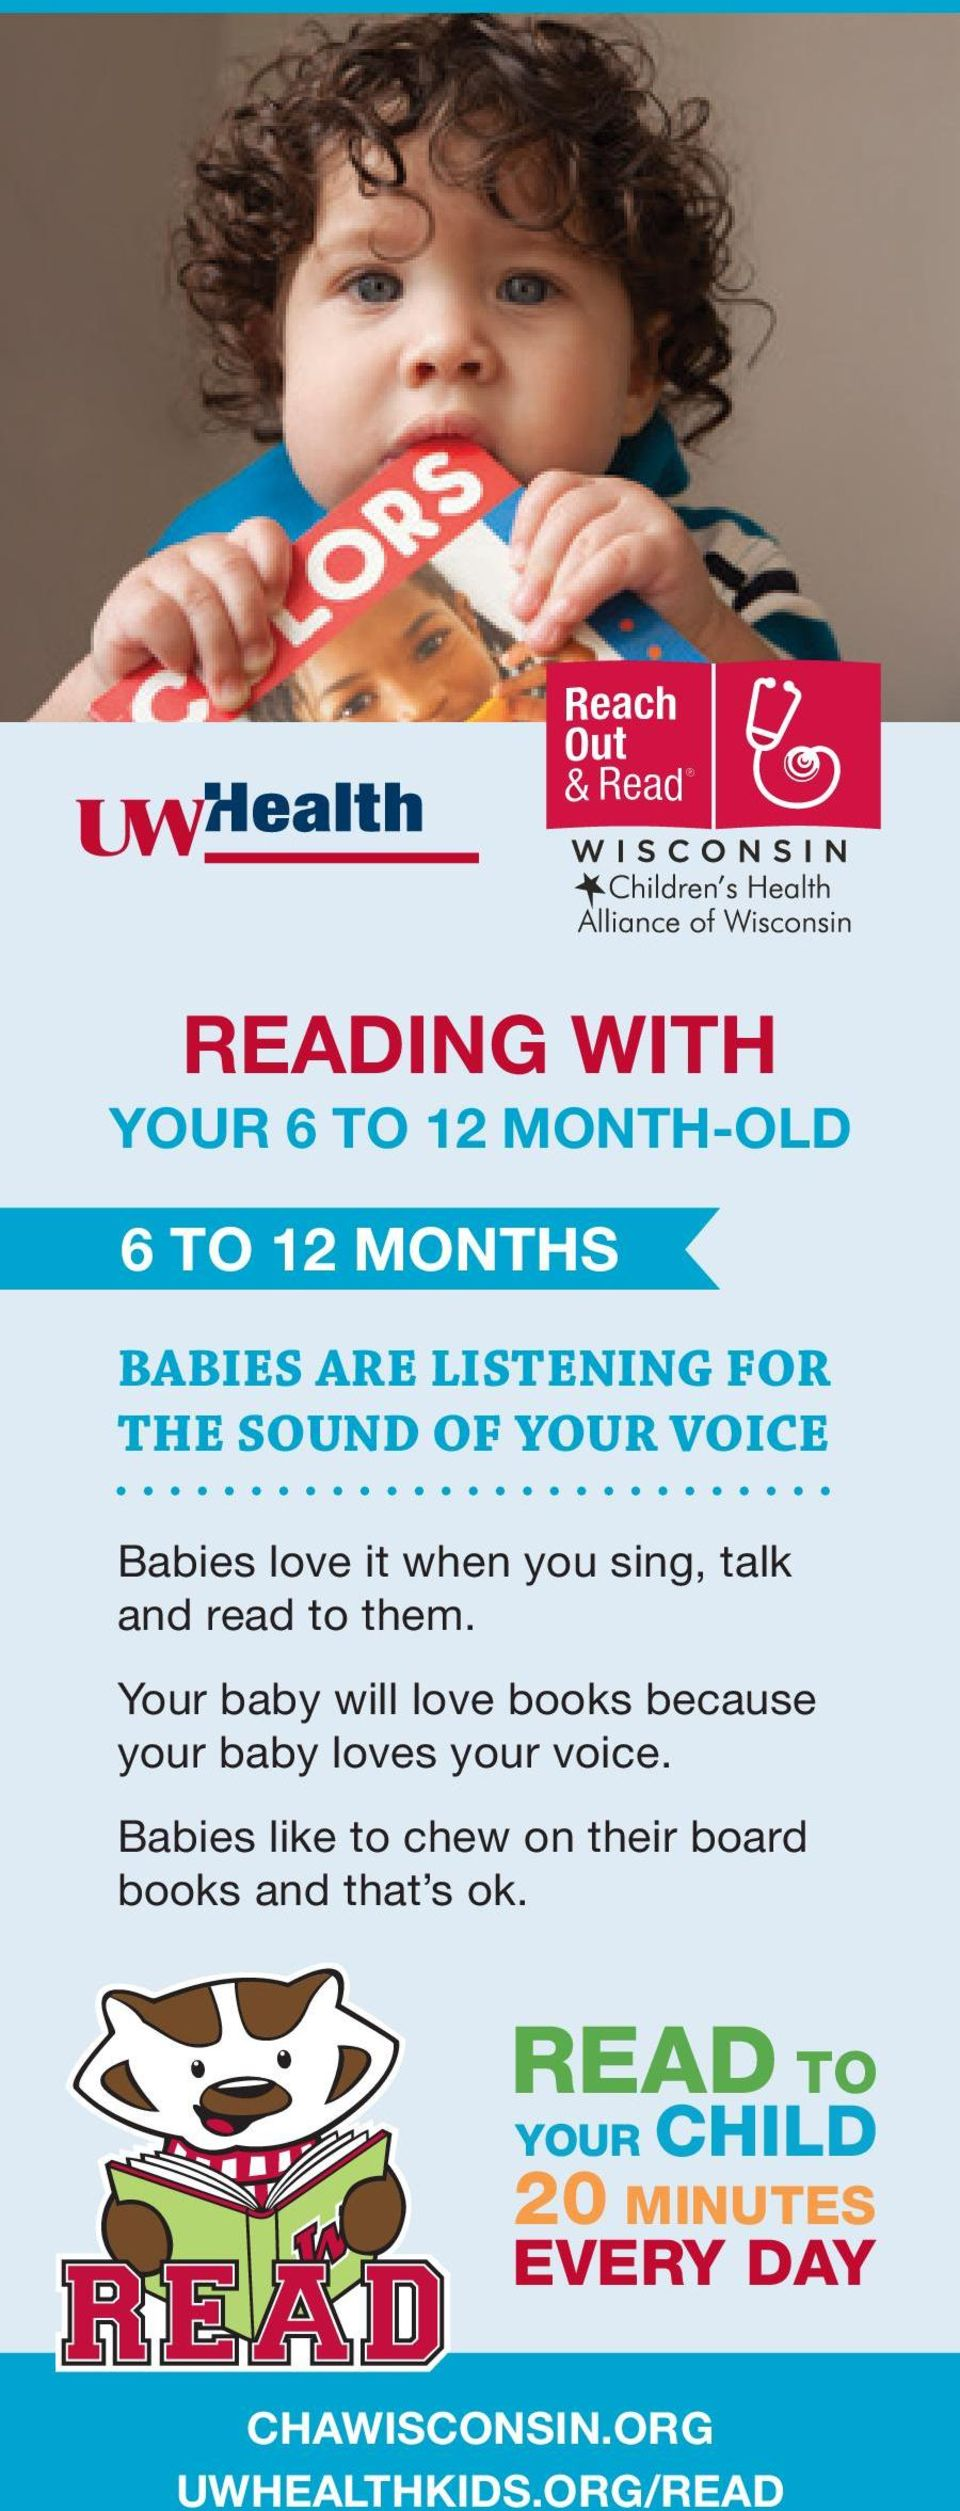 Your baby will love books because your baby loves your voice.